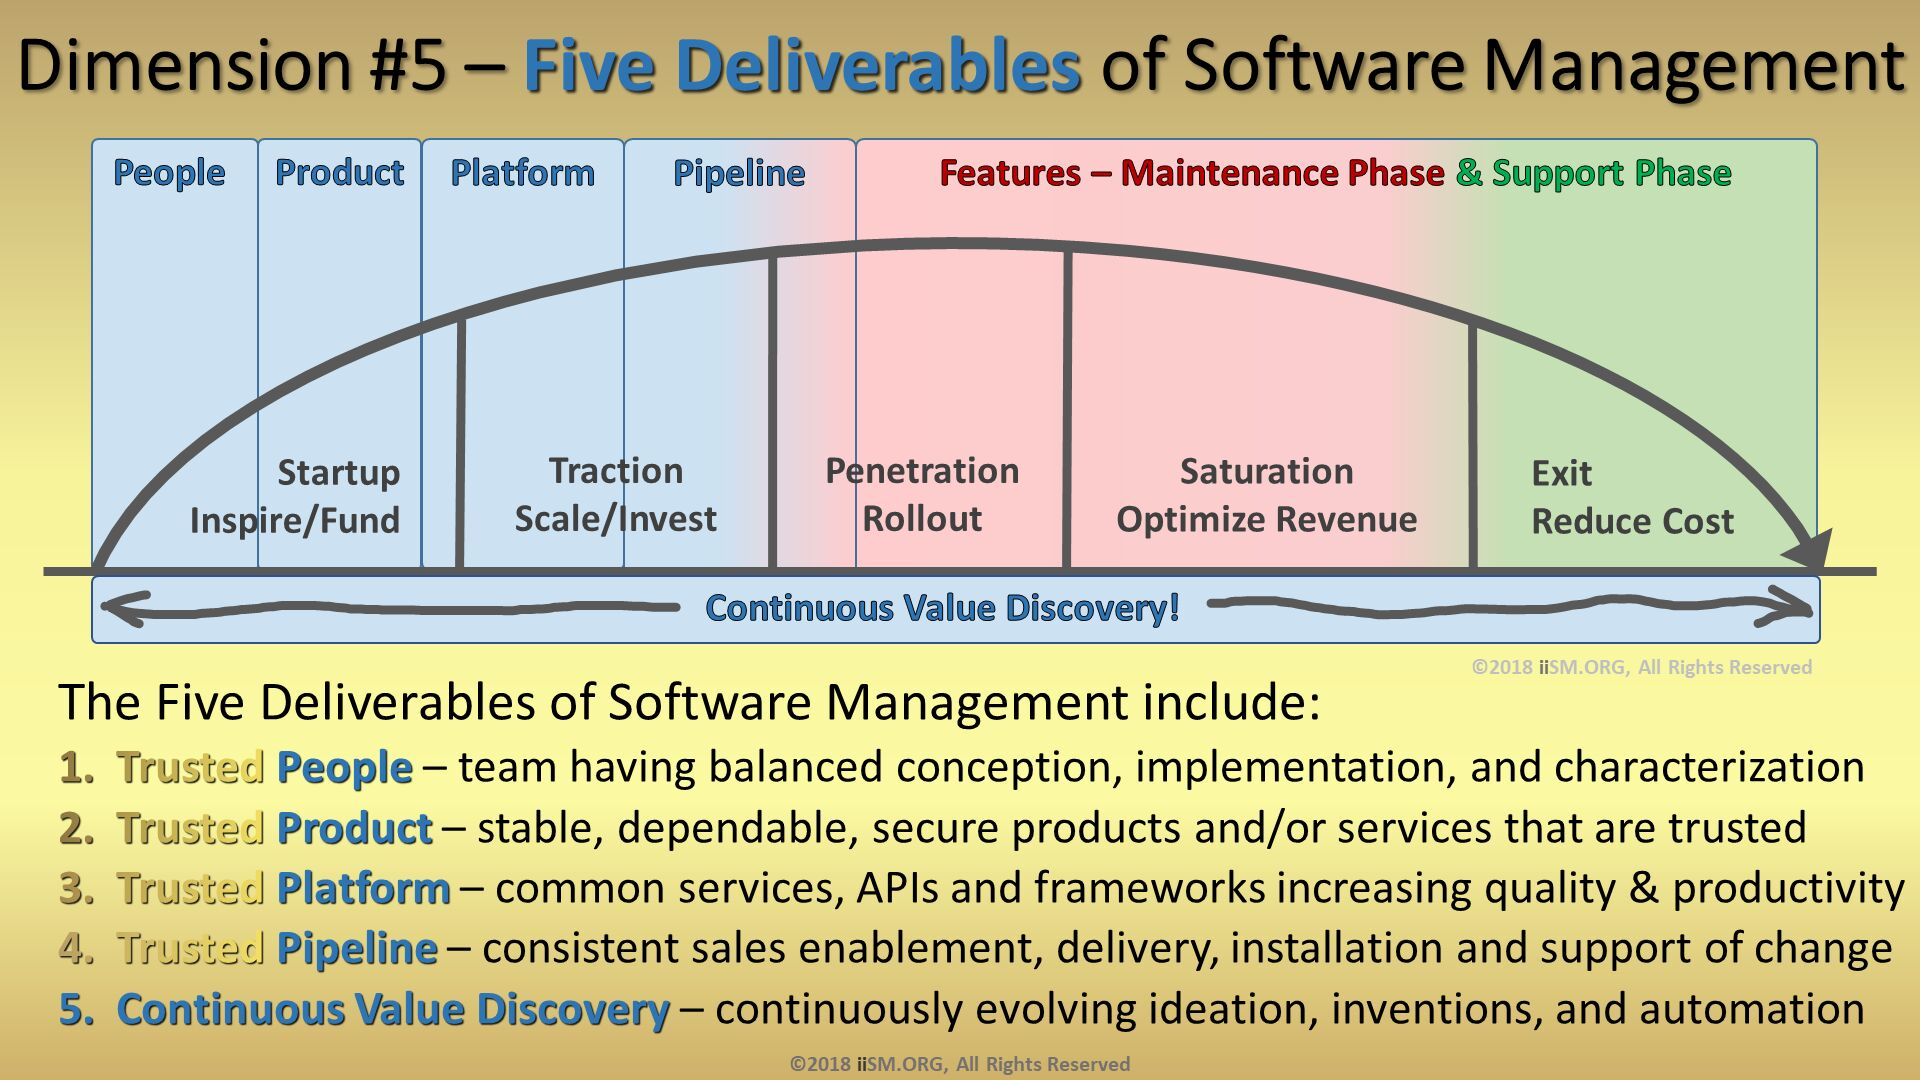 Dimension #5 – Five Deliverables of Software Management . The Five Deliverables of Software Management include: Trusted People – team having balanced conception, implementation, and characterization Trusted Product – stable, dependable, secure products and/or services that are trusted Trusted Platform – common services, APIs and frameworks increasing quality & productivity Trusted Pipeline – consistent sales enablement, delivery, installation and support of change Continuous Value Discovery – continuously evolving ideation, inventions, and automation. ©2018 iiSM.ORG, All Rights Reserved. ©2018 iiSM.ORG, All Rights Reserved.